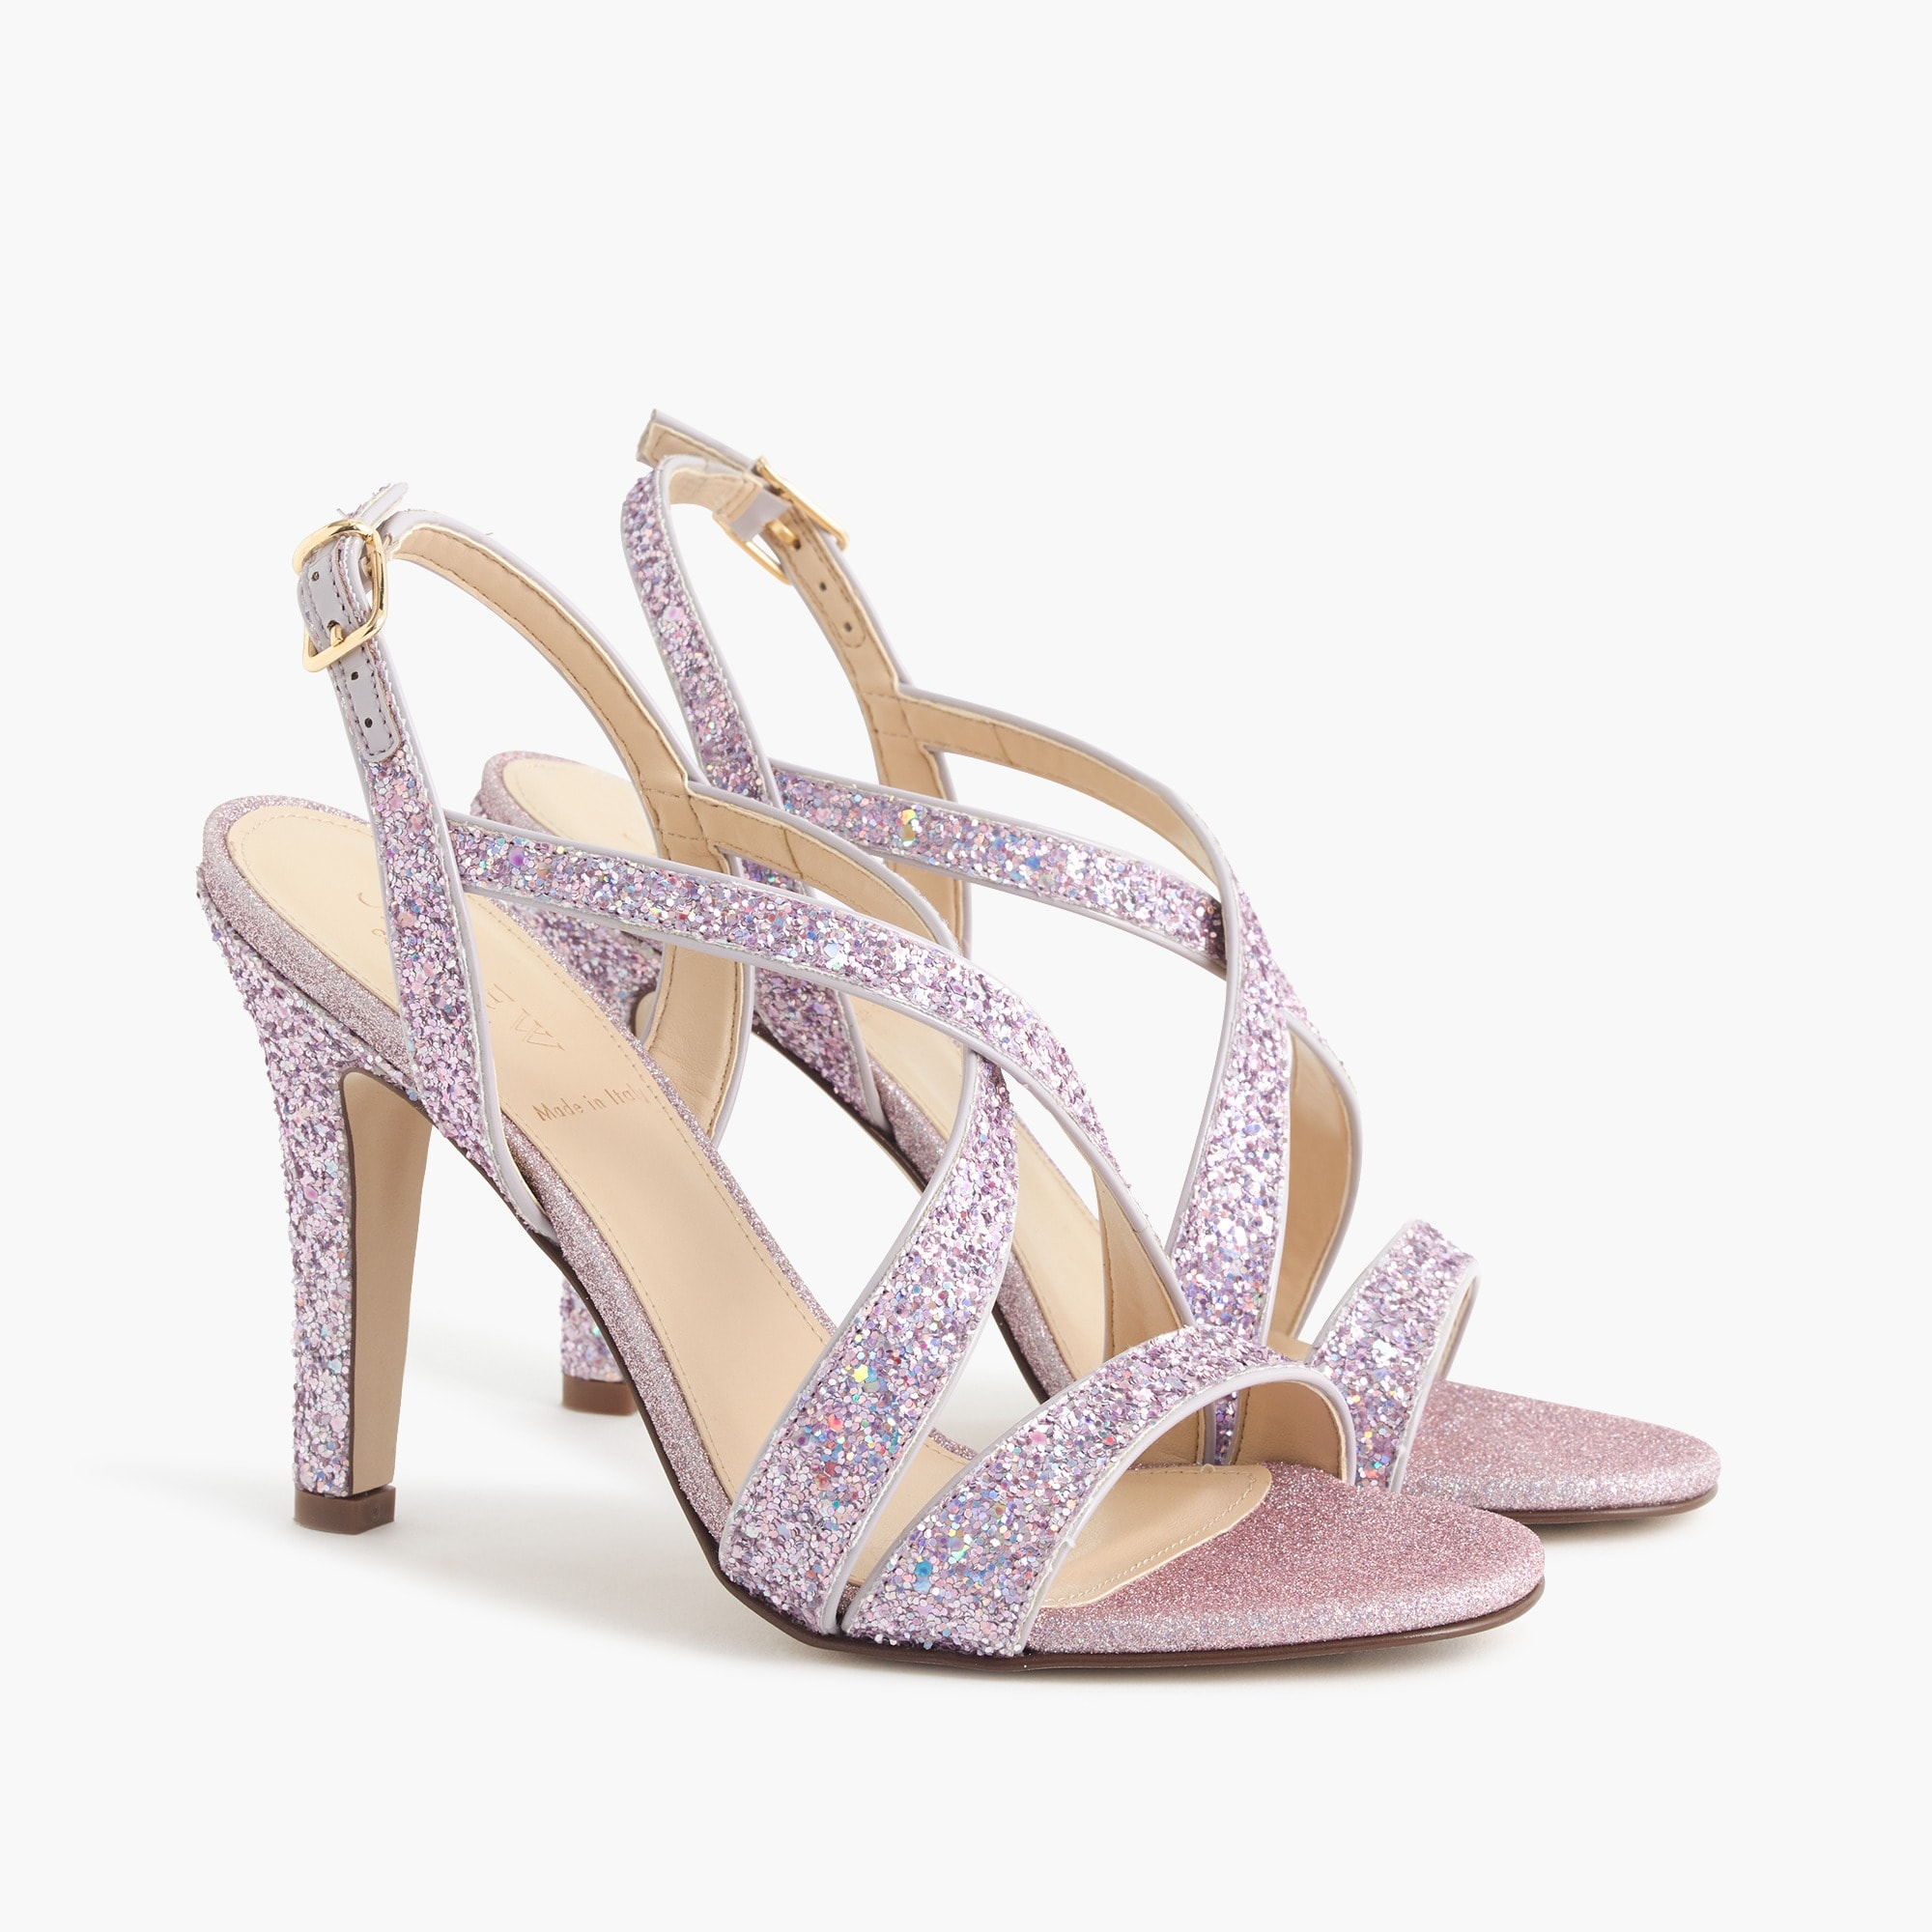 women's crisscross strappy heels (105mm) in glitter - women's footwear